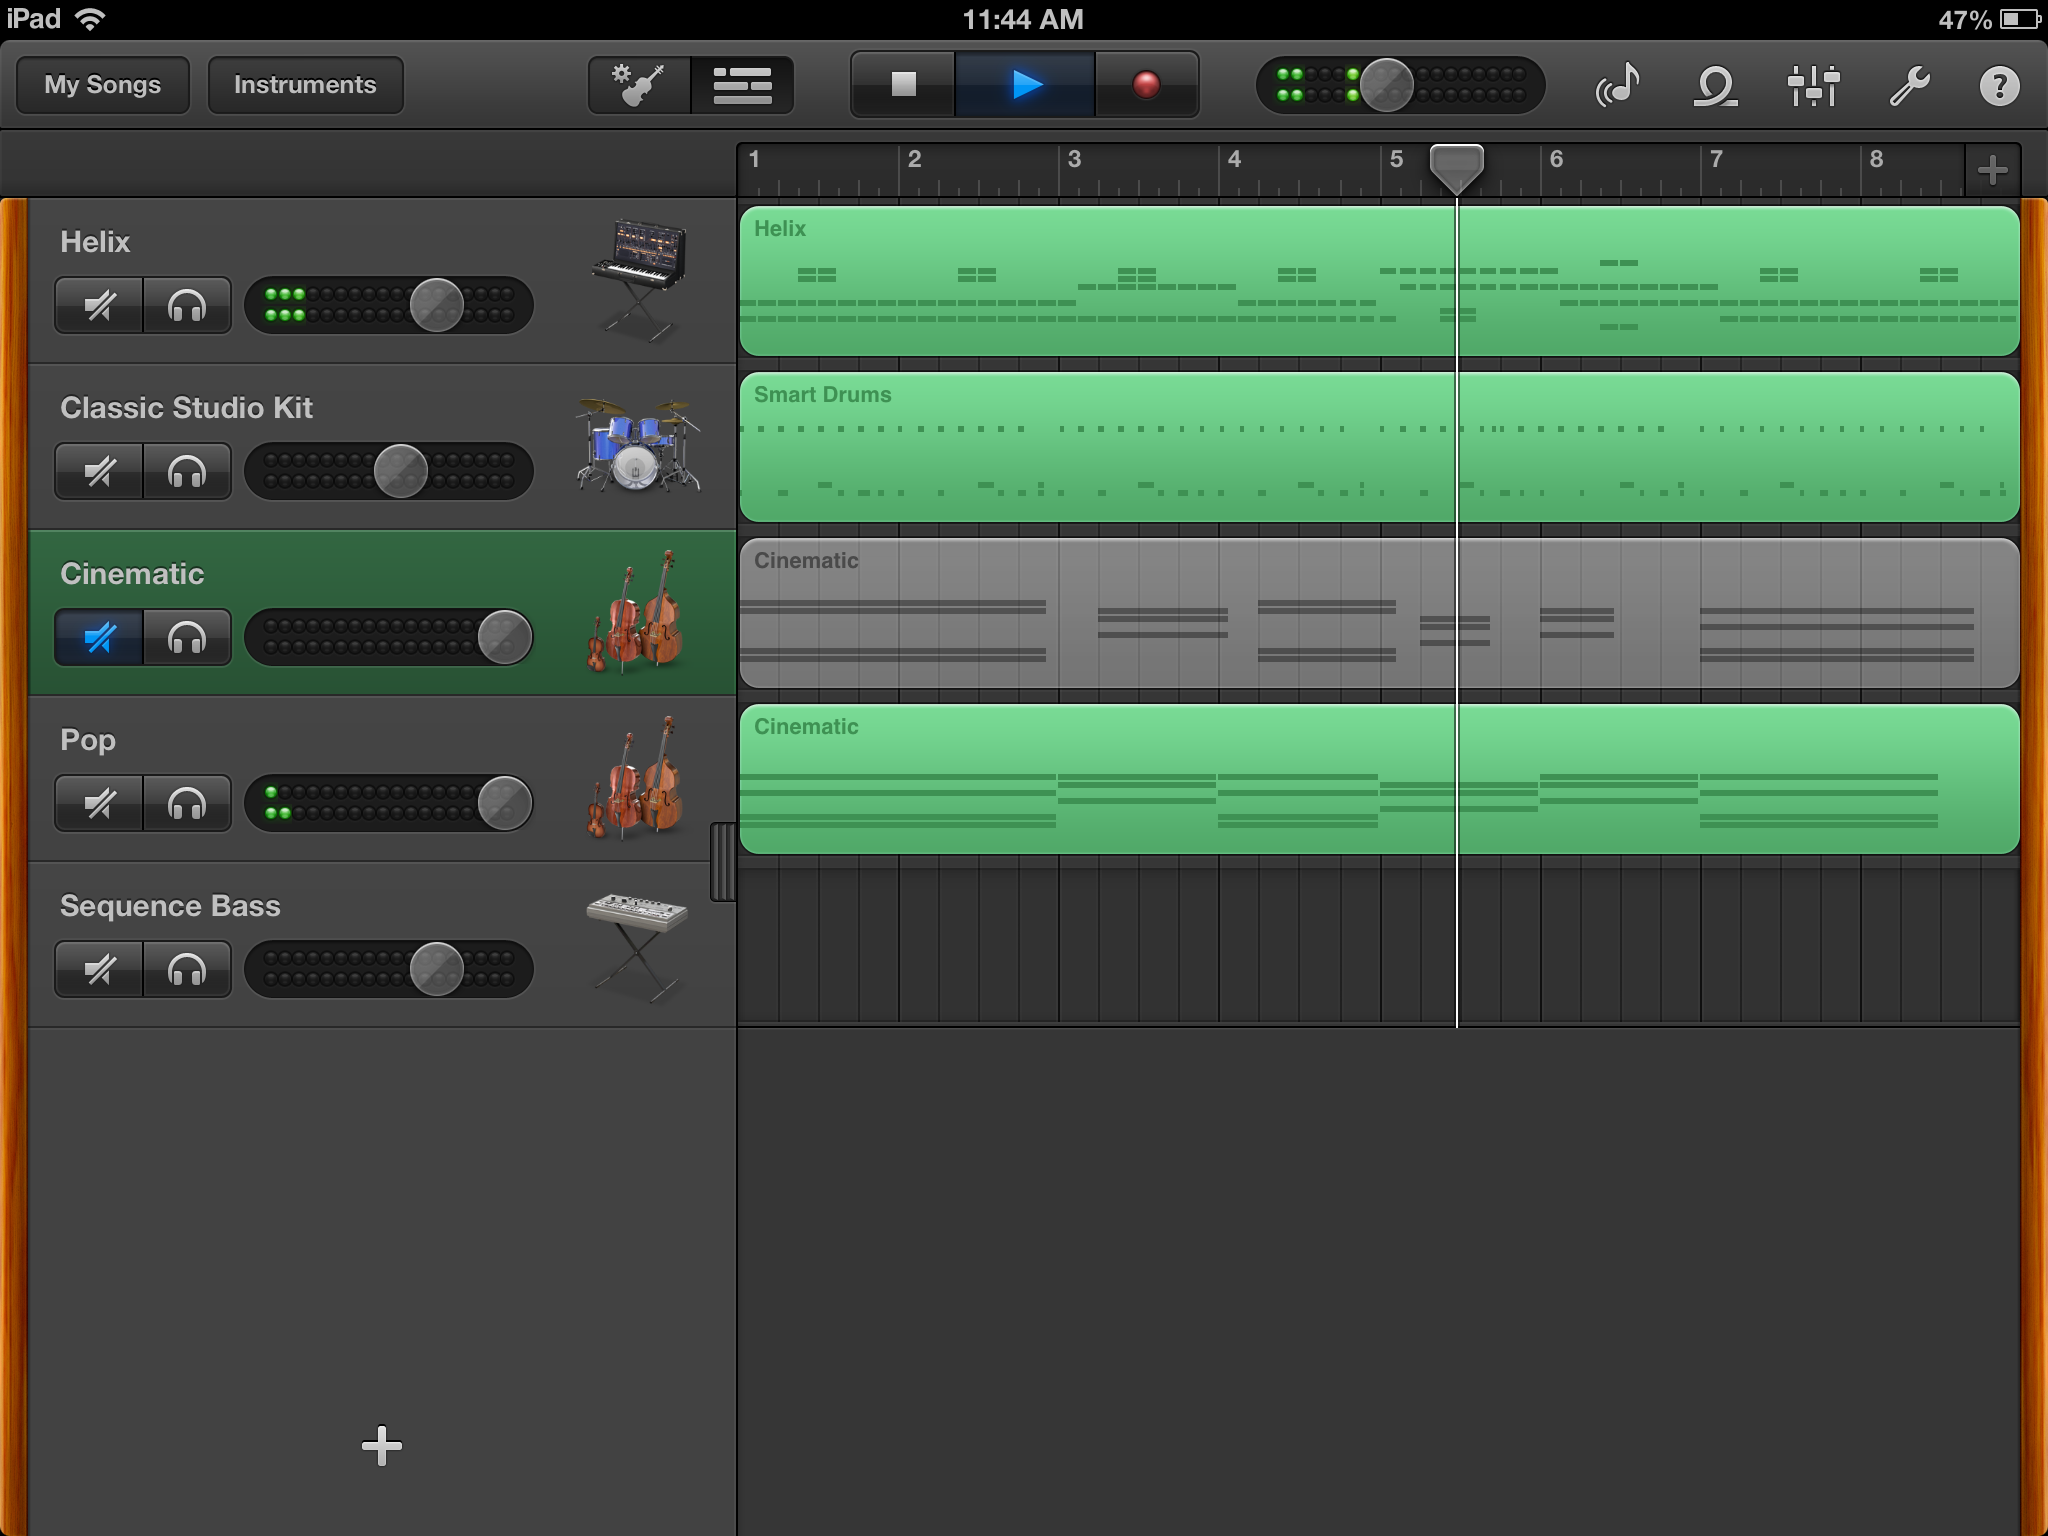 download-Garageband GarageBand APK free Download V1.0.4.1 for Android